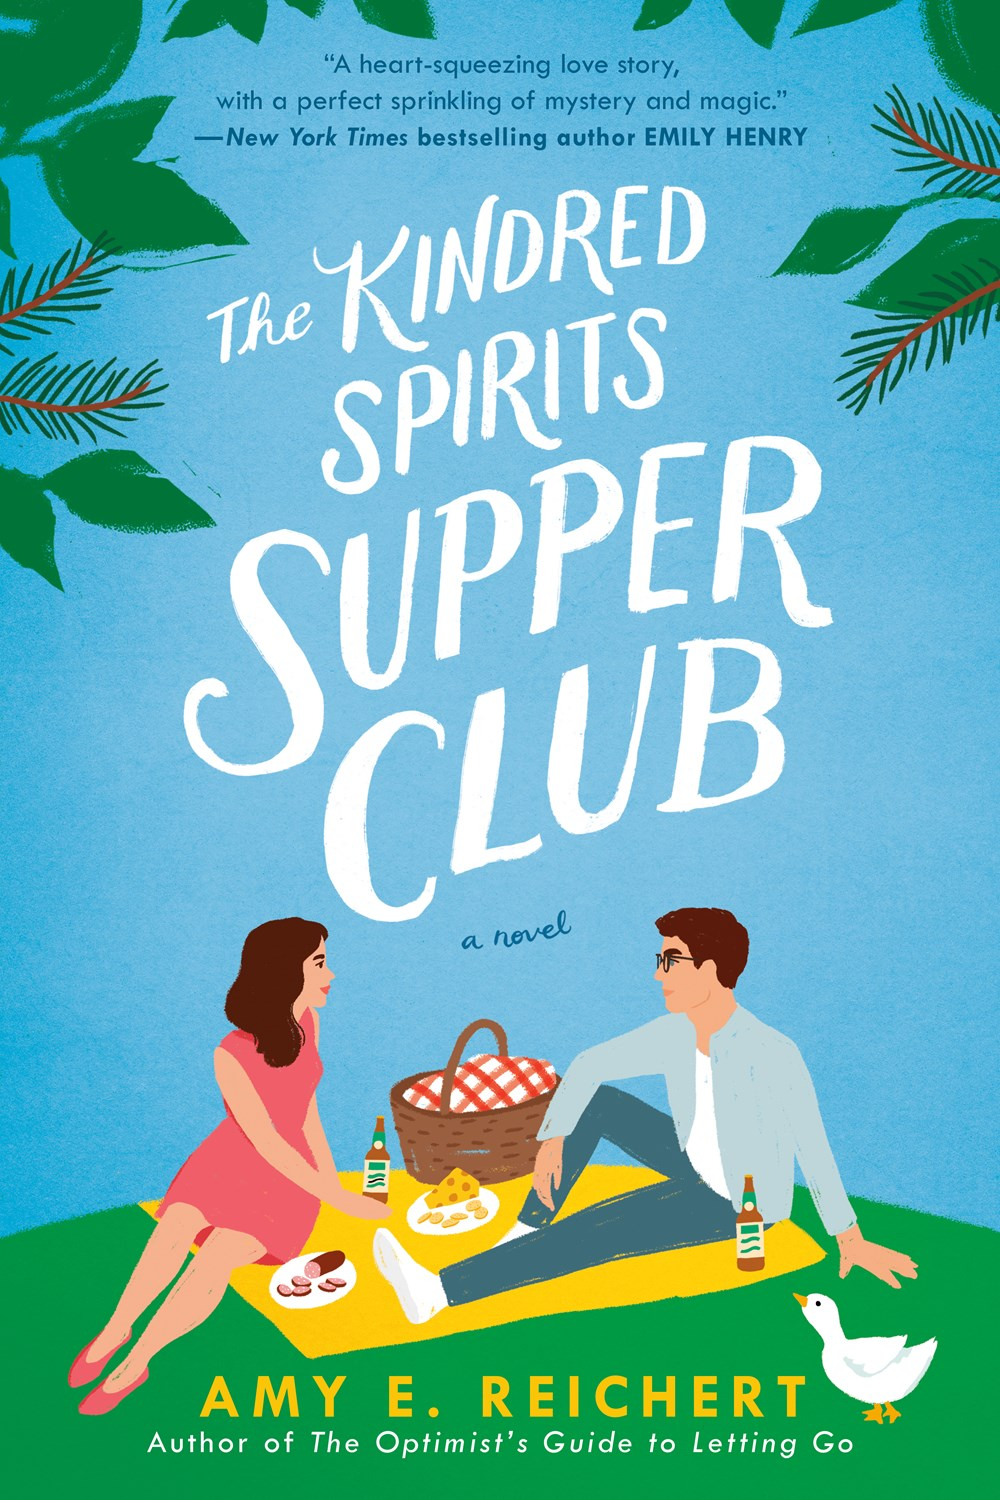 The Kindred Spirits Supper Club by Amy E. Reichert